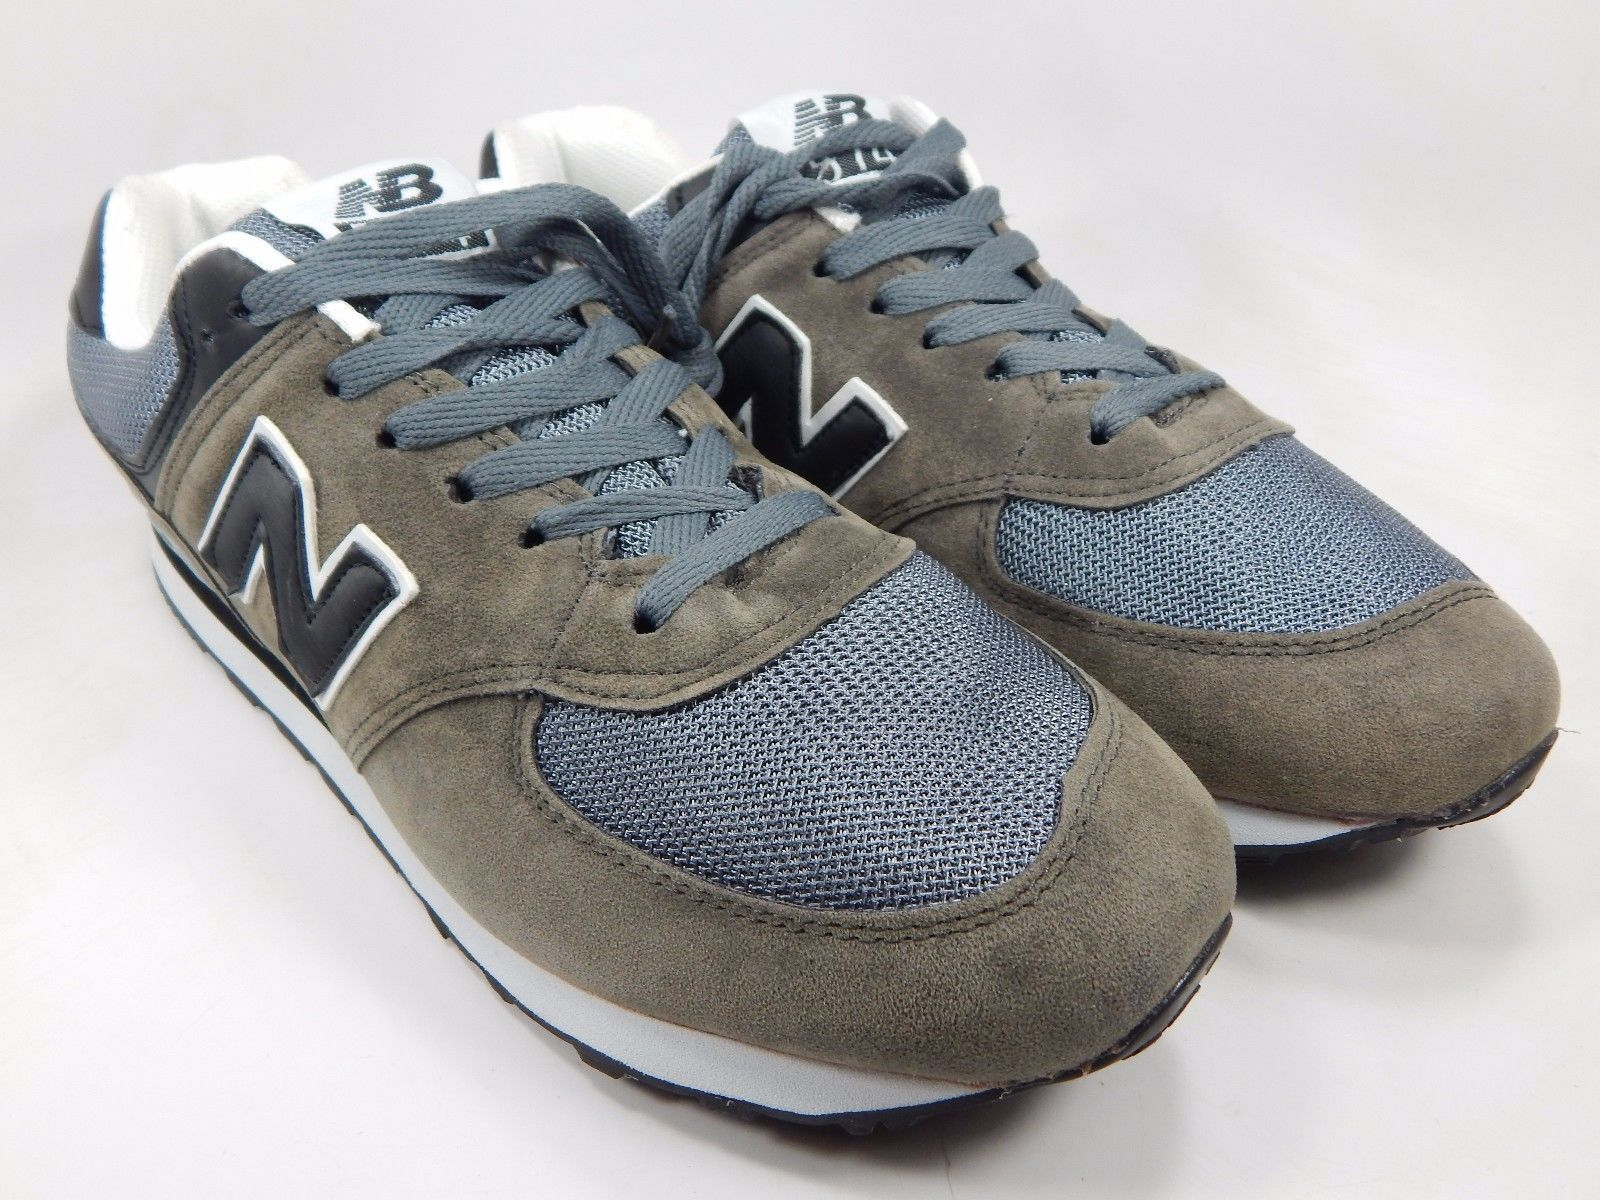 New Balance 574 Classic Men's Running Shoes Size US 10 M (D) EU 45 Gray